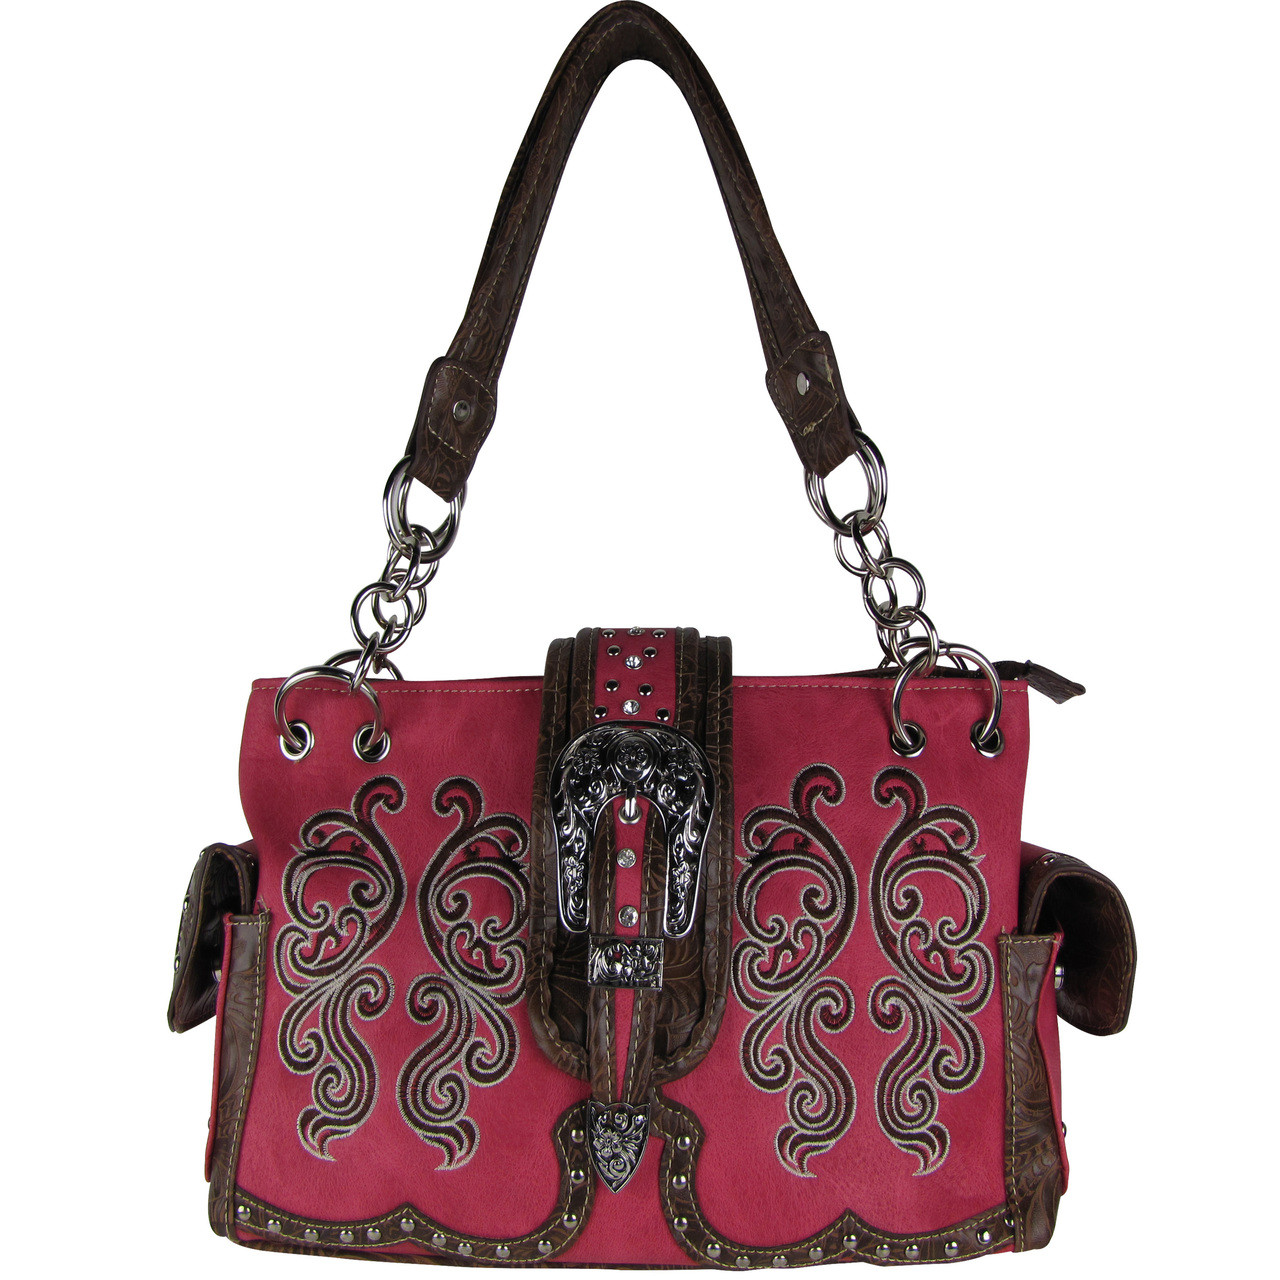 HOT PINK WESTERN BUCKLE LOOK SHOULDER HANDBAG HB1-39W62HPK